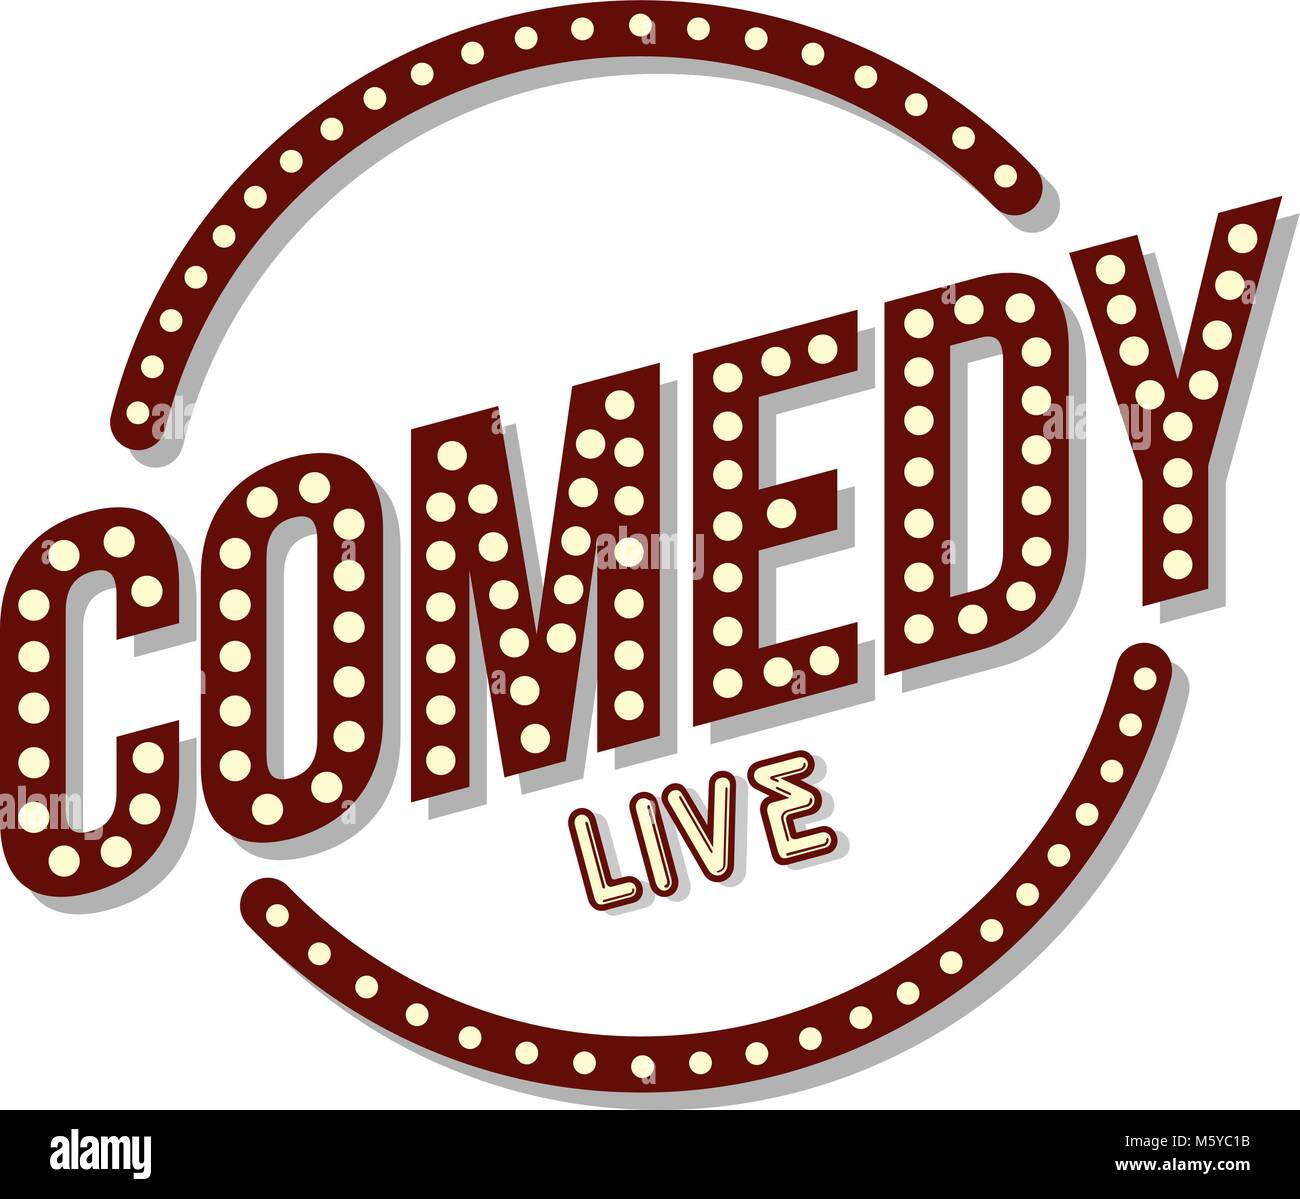 stand up comedy neon sign lamp vector art illustration Stock